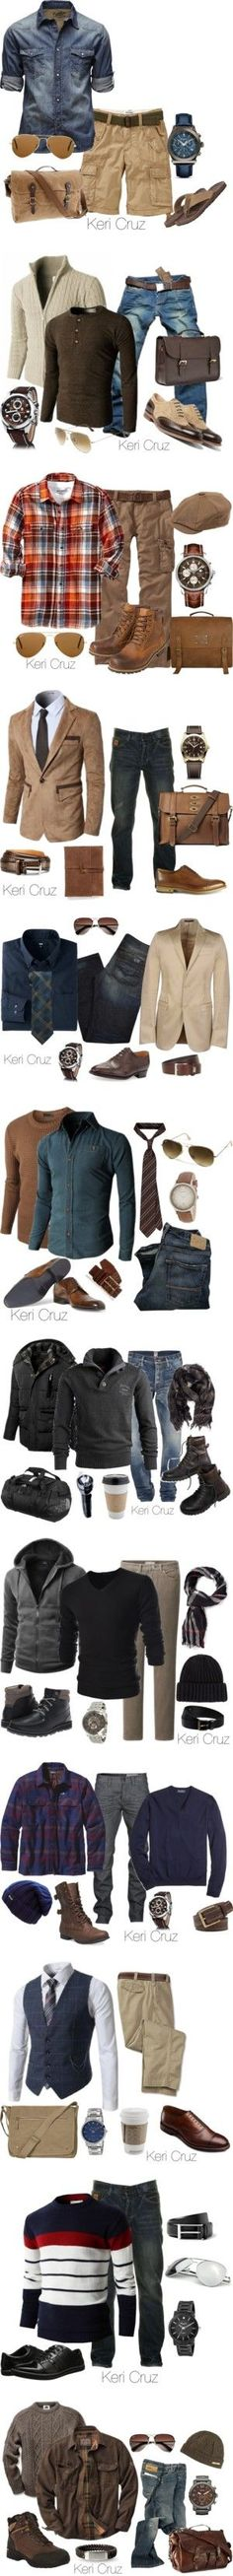 Mens Fashion Sets by Keri Cruz by keri-cruz on Polyvore featuring moda, Old Navy, Jack Jones, Salvatore Ferragamo, Ray-Ban, J.Crew, Kenneth Cole Reaction, Doublju, Cerruti 1881 and Mulberry - ray ban sunglasses for gift in summer.